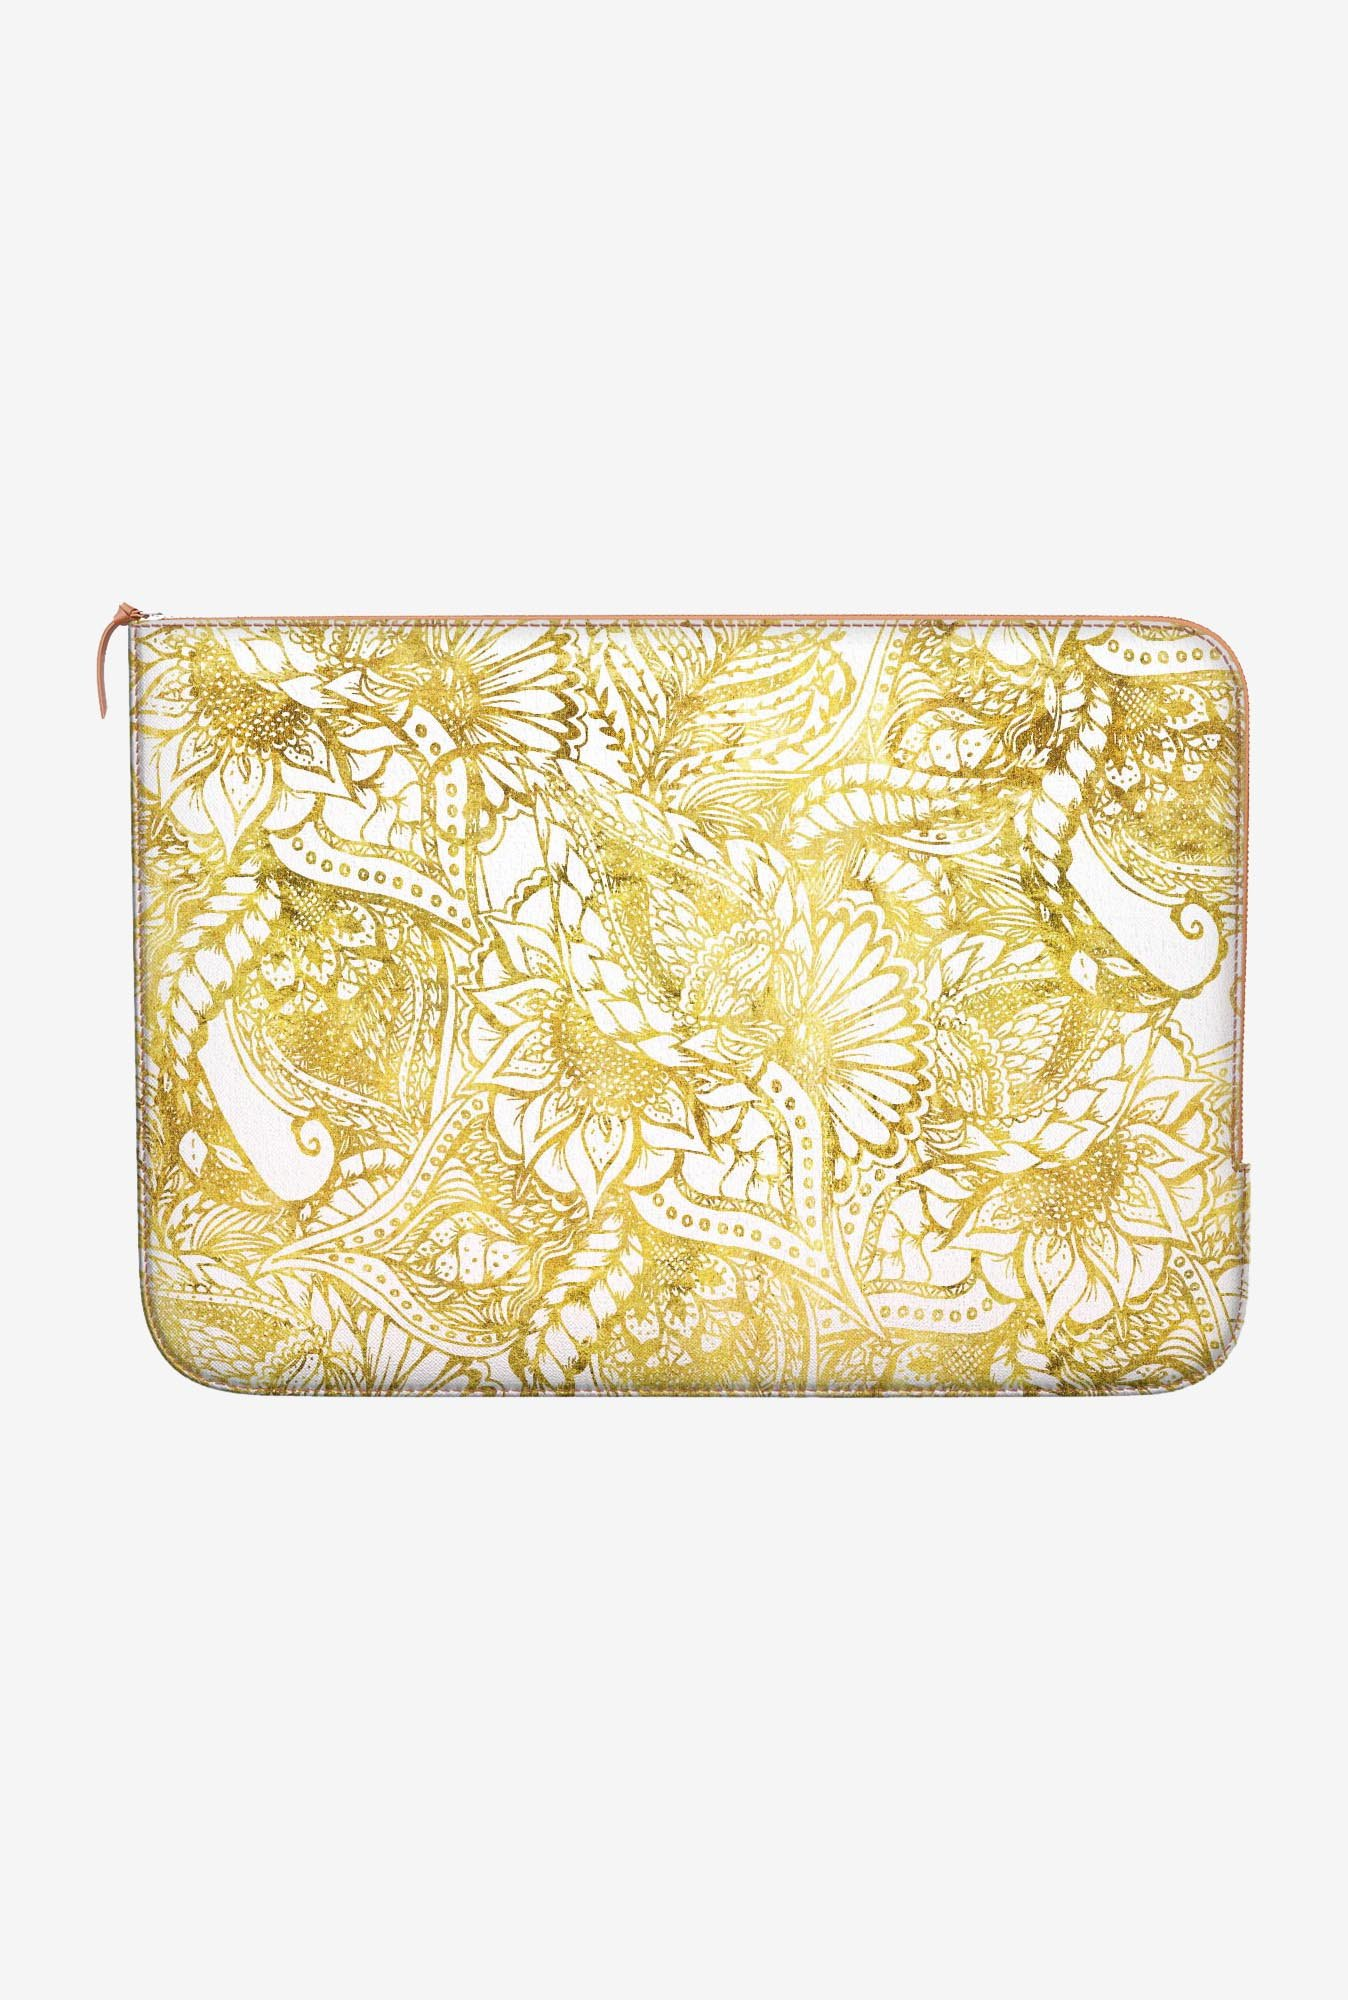 DailyObjects Gold Floral MacBook Pro 13 Zippered Sleeve